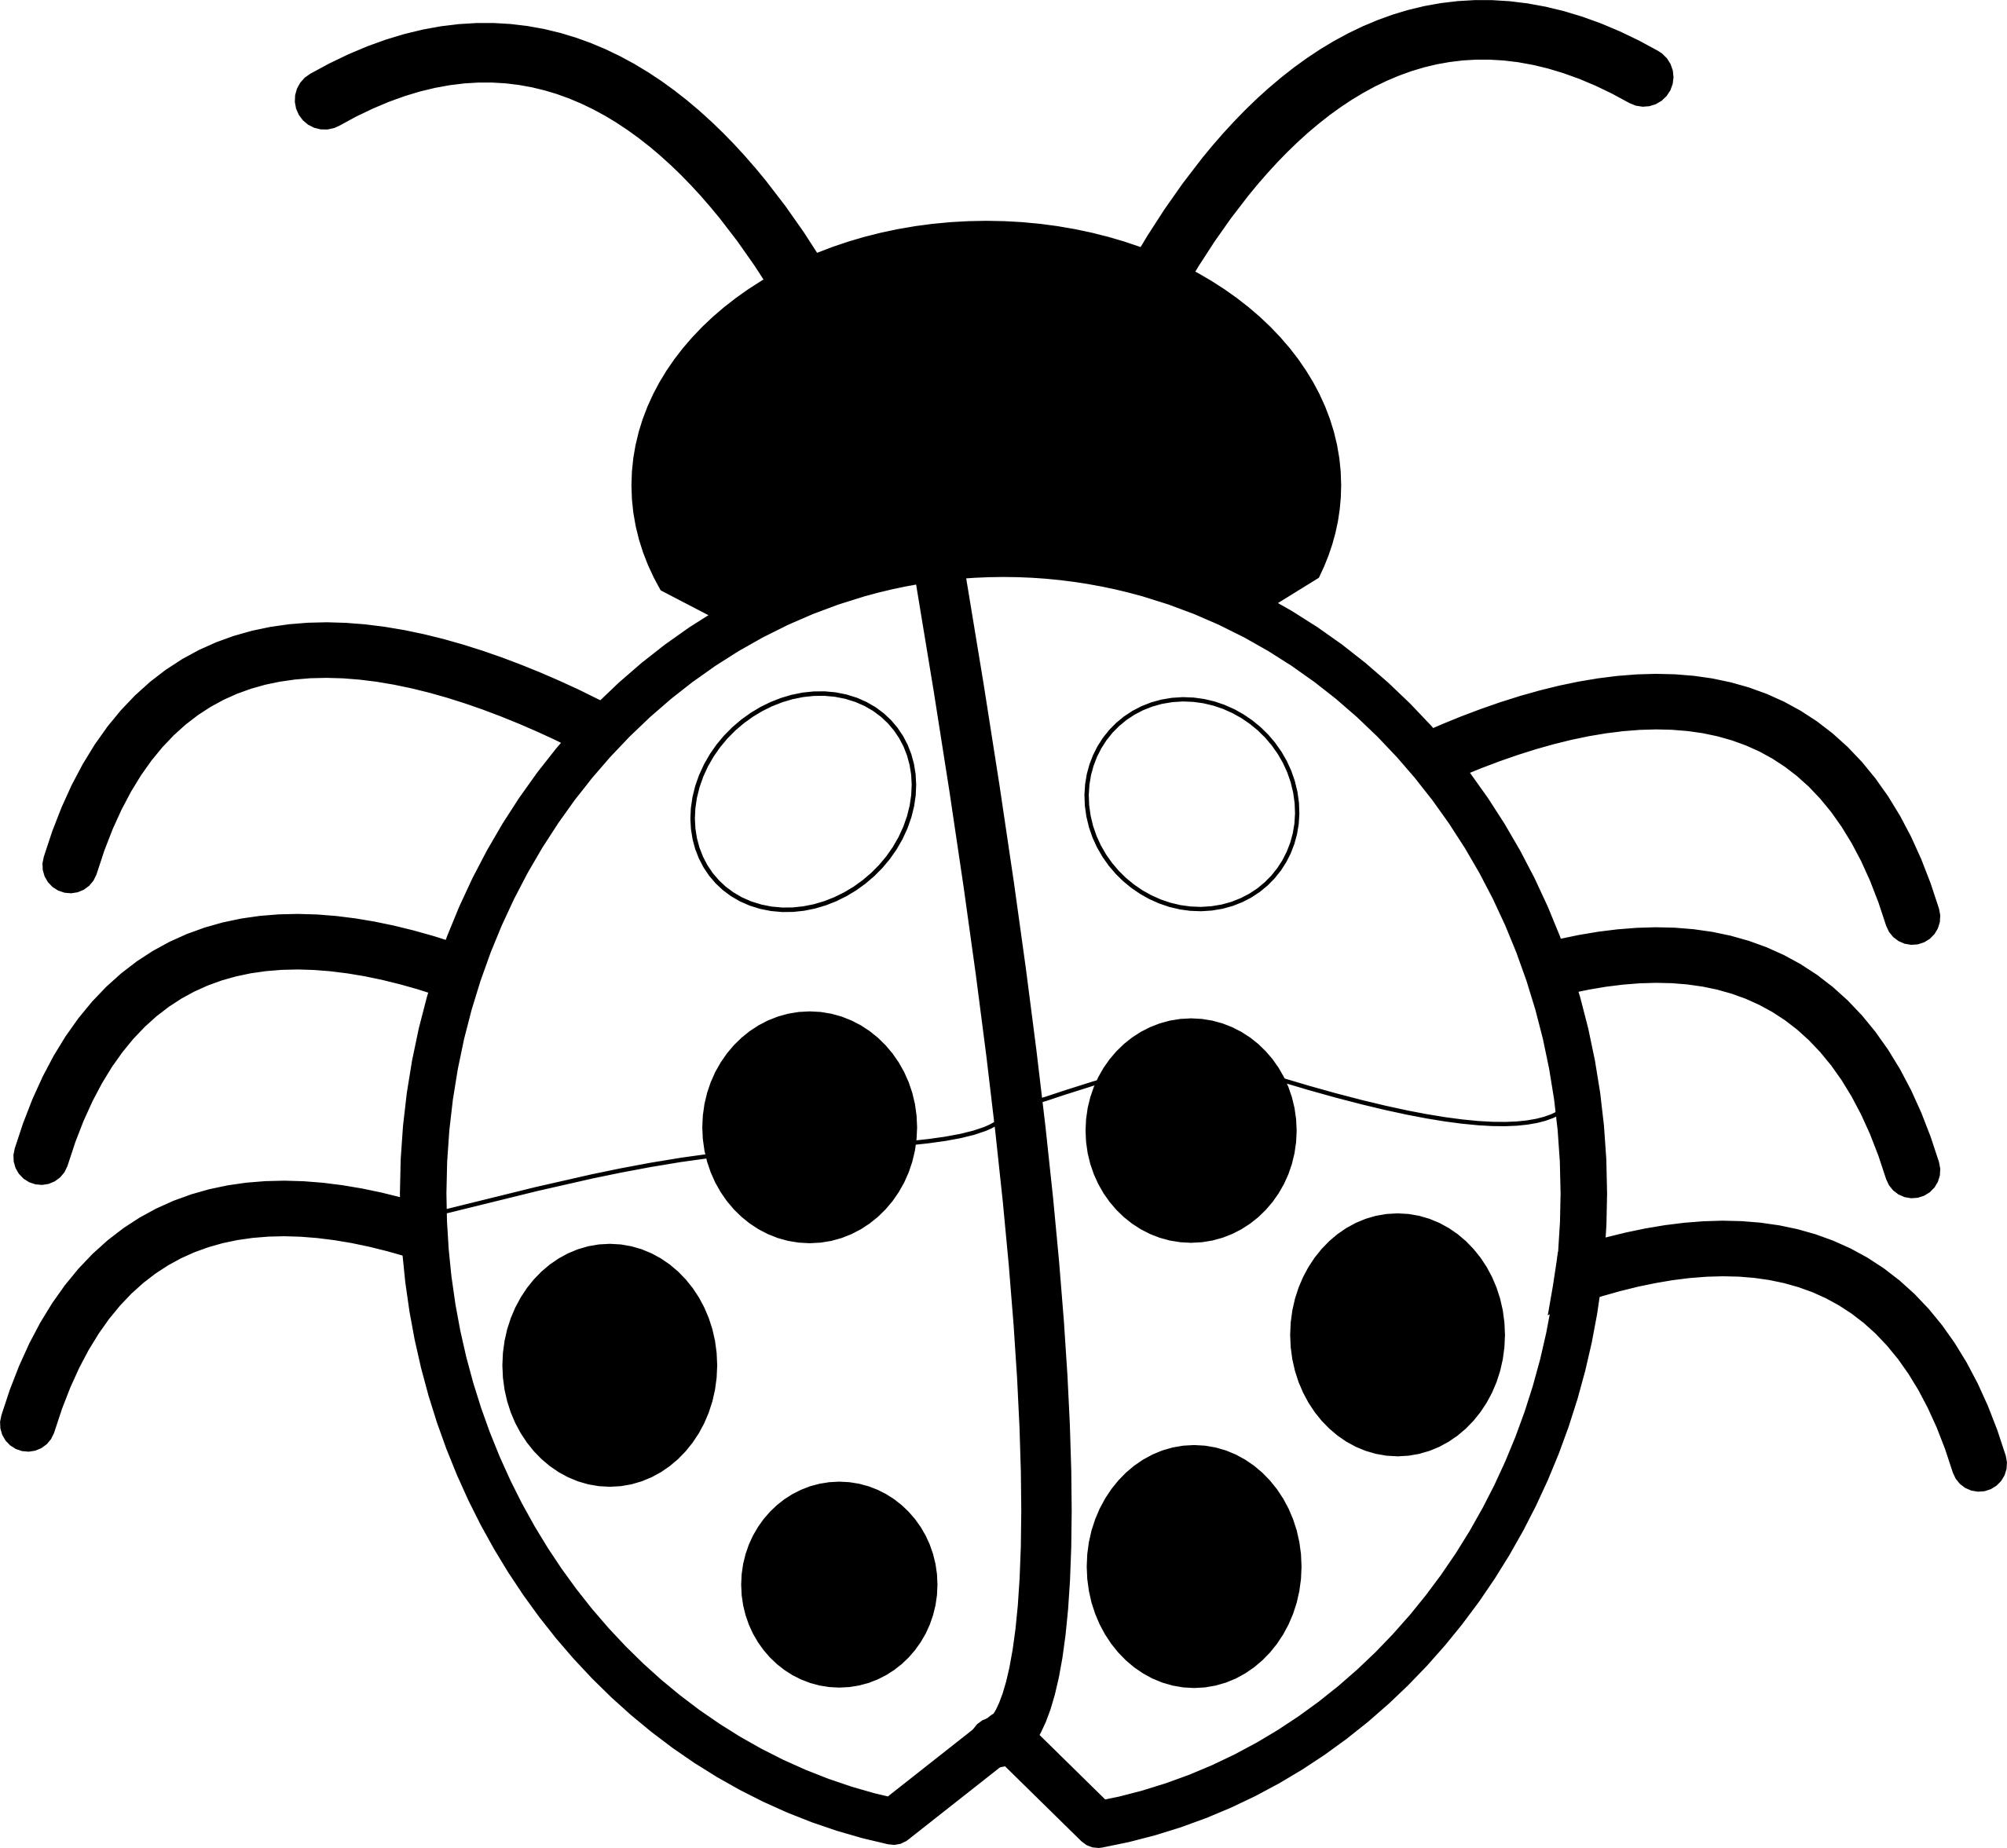 Vector Drawing Lines Libgdx : Ladybug clipart black and white panda free